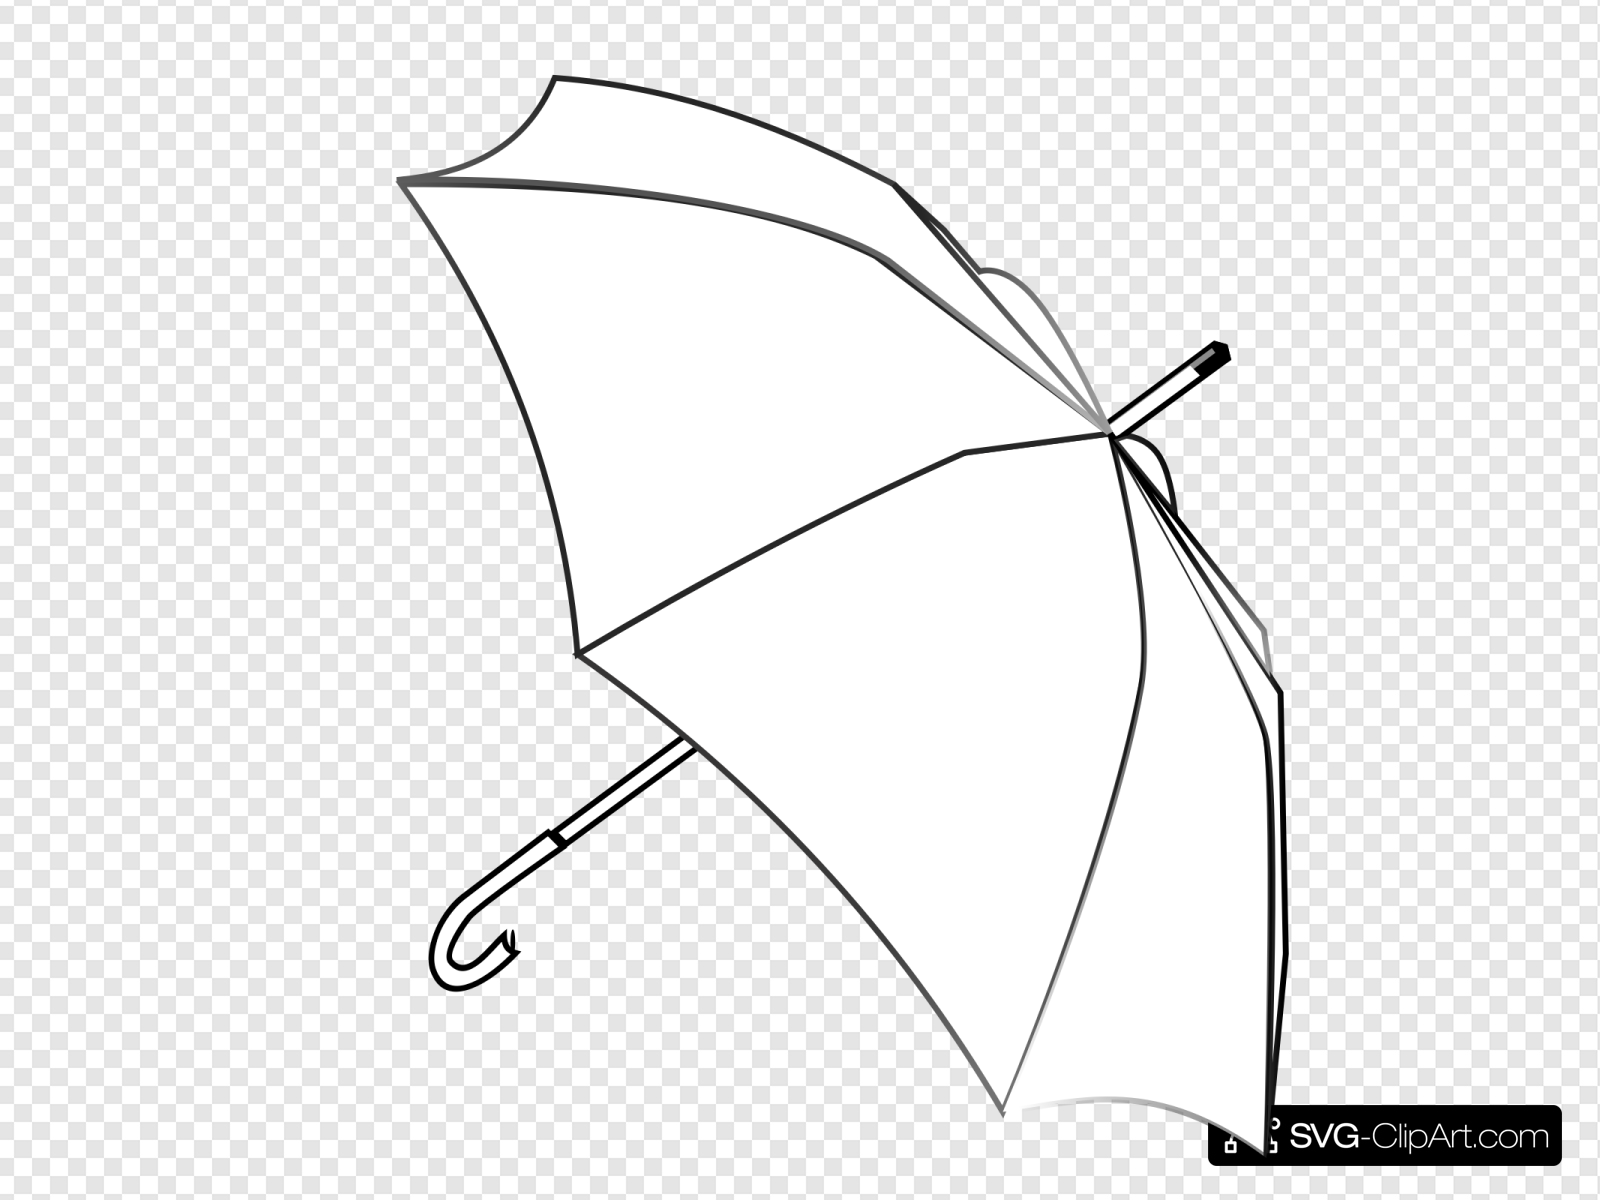 Umbrella Outline Clip art, Icon and SVG.